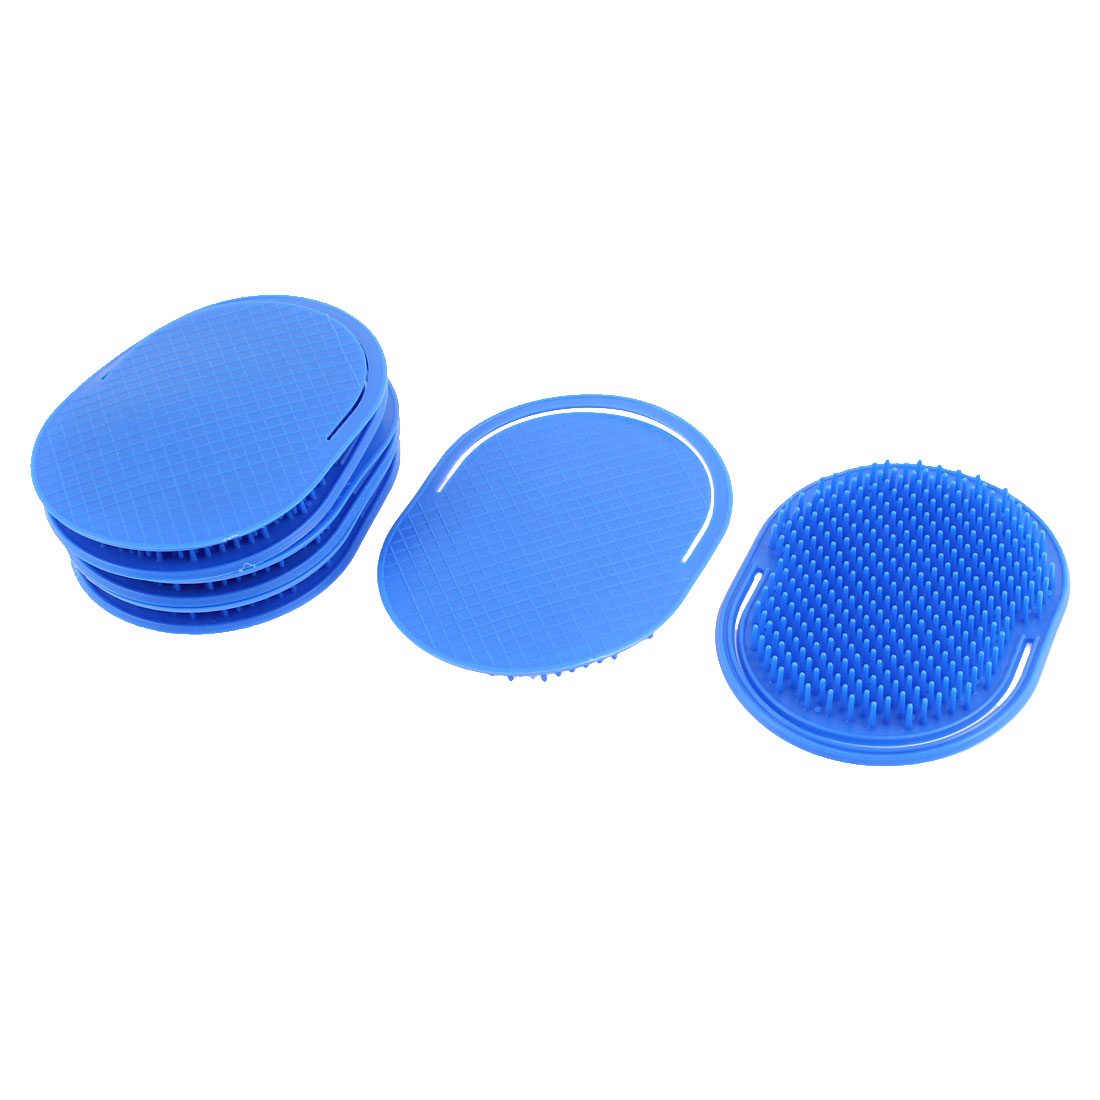 Home Plastic Oval Shaped Hair Comb Scalp Massage Brush Dark Blue 8Pcs